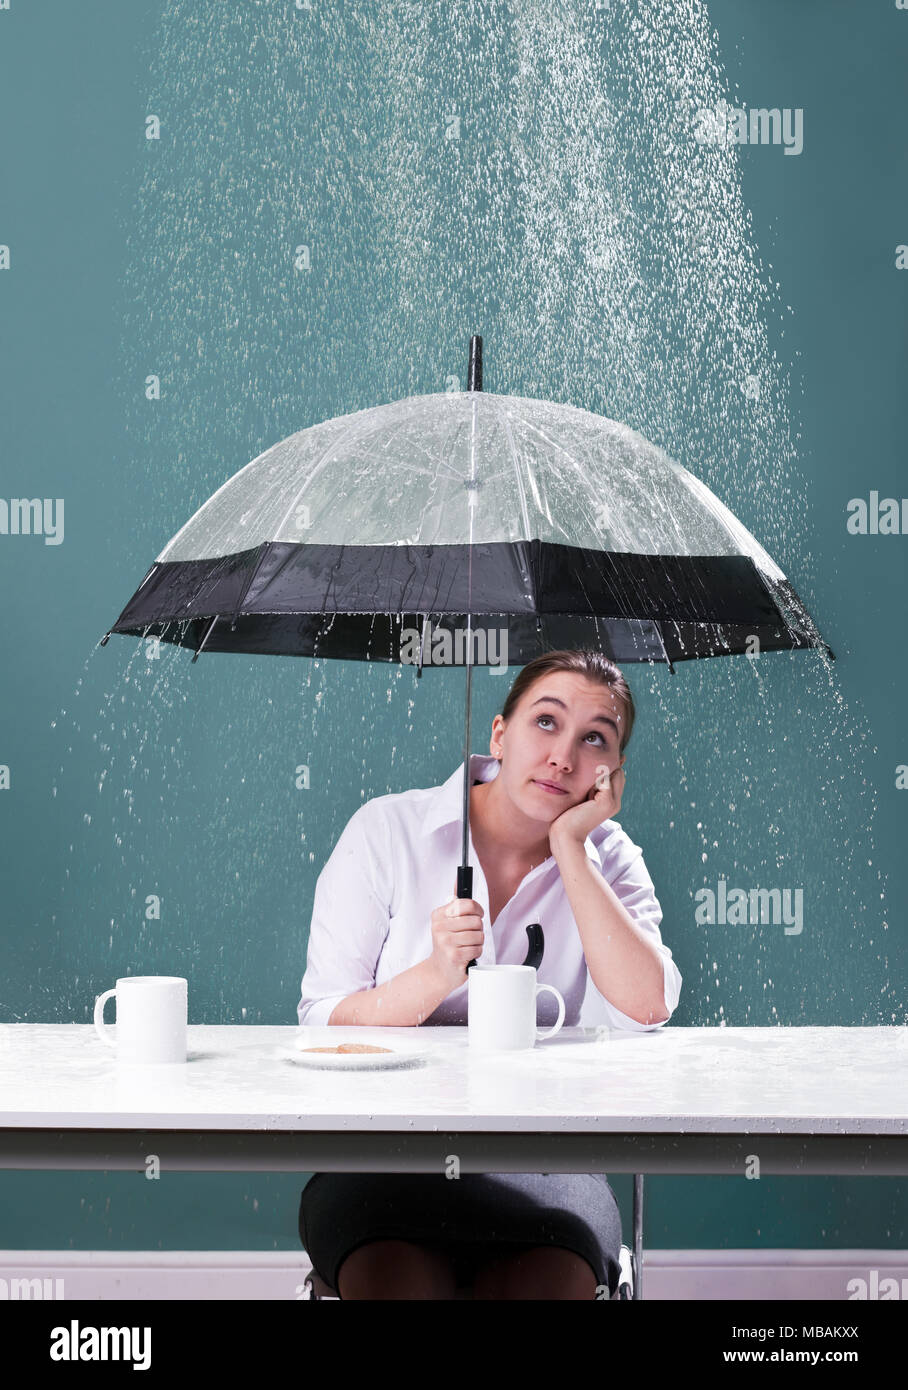 Woman sitting at a table with umbrella in the rain - Stock Image